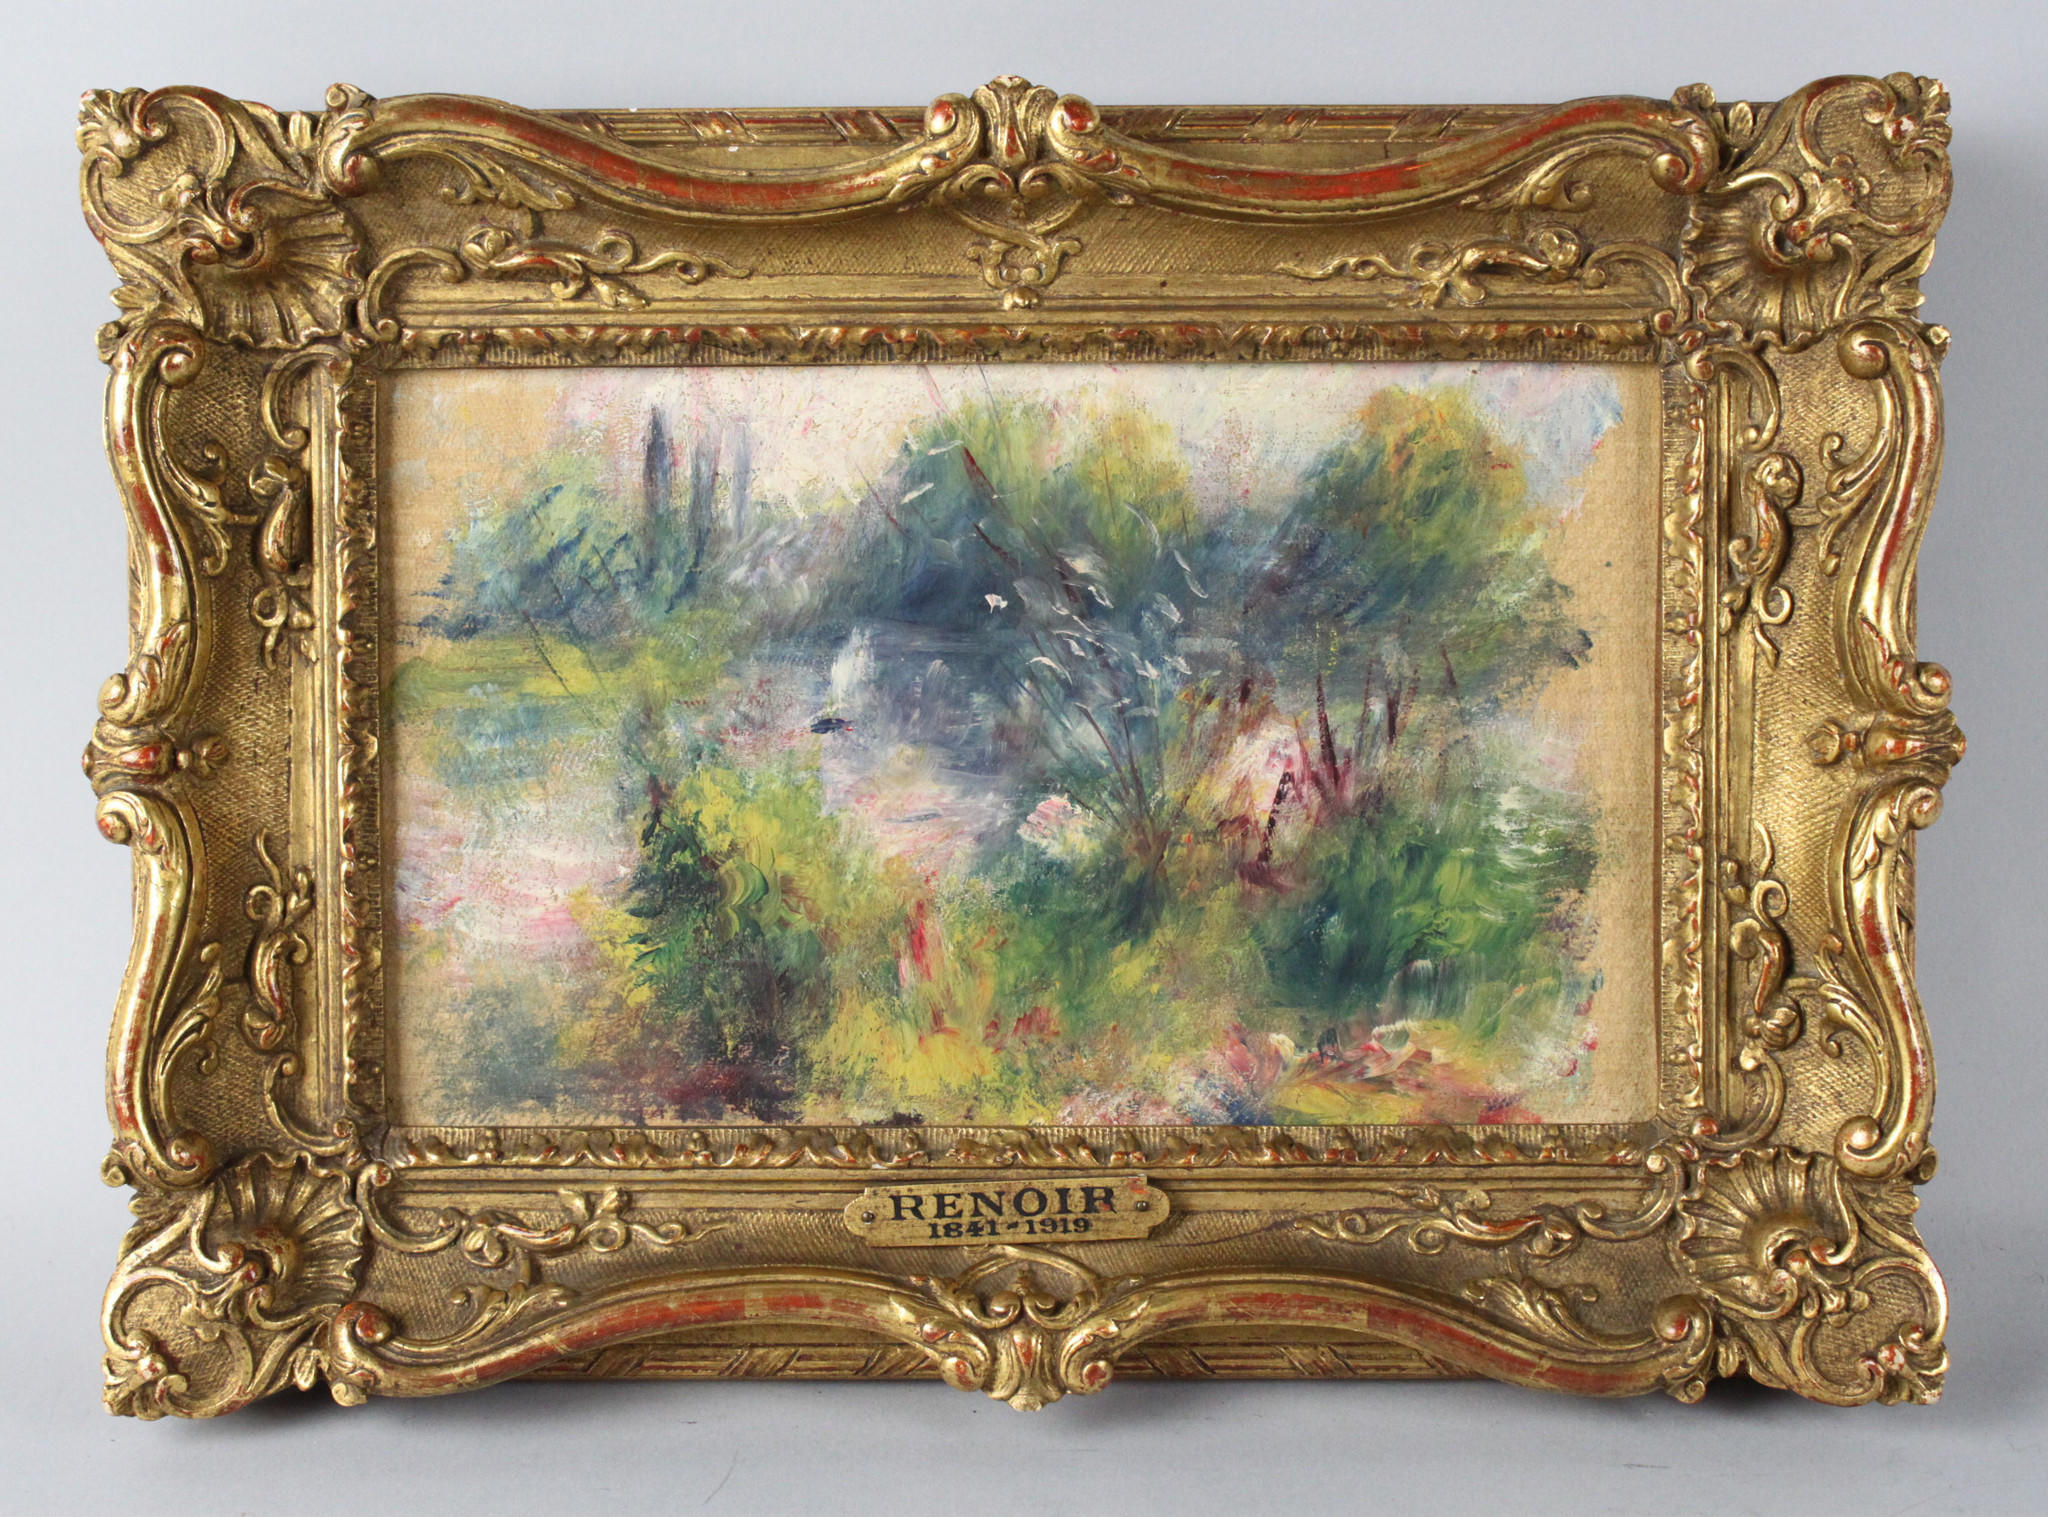 """The Renoir painting """"Paysage Bords de Seine"""" is now assessed at $22,000."""